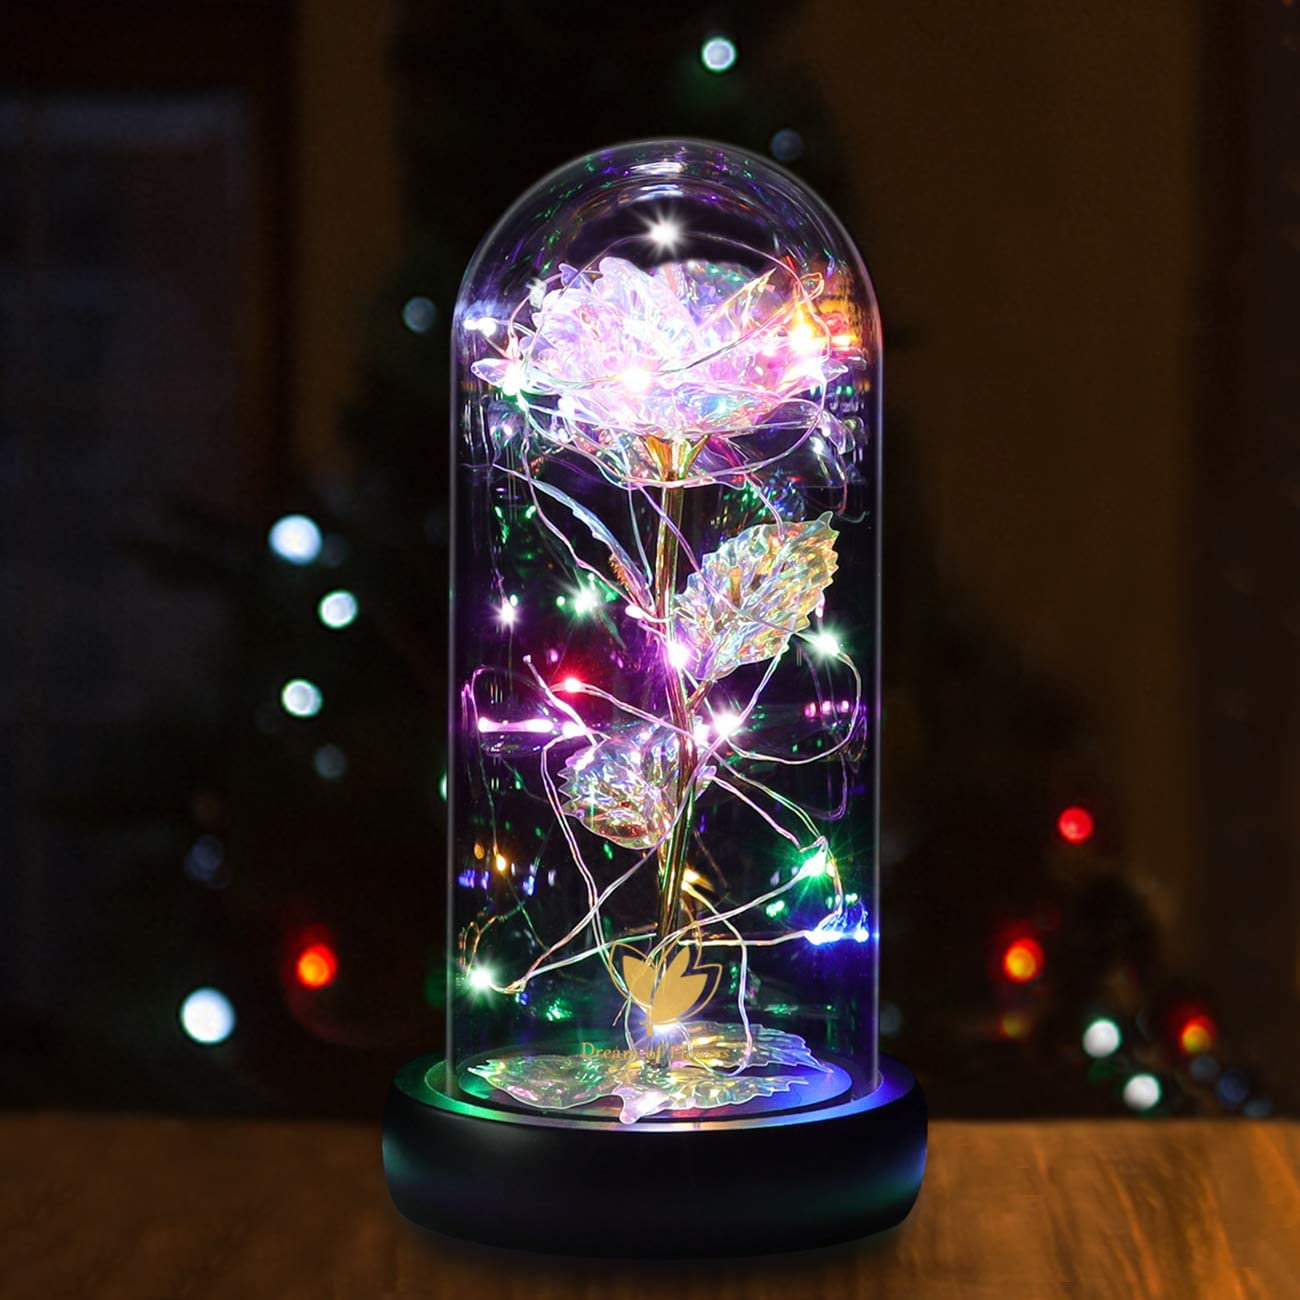 Beauty and The Beast Rose Kit, Galaxy Rose Artificial Colorful Rose Flower, 20 LED Lights in Glass Dome on Wood Base, Warm Light Mode, Fallen Gold Leaves, Home Decor Decorations